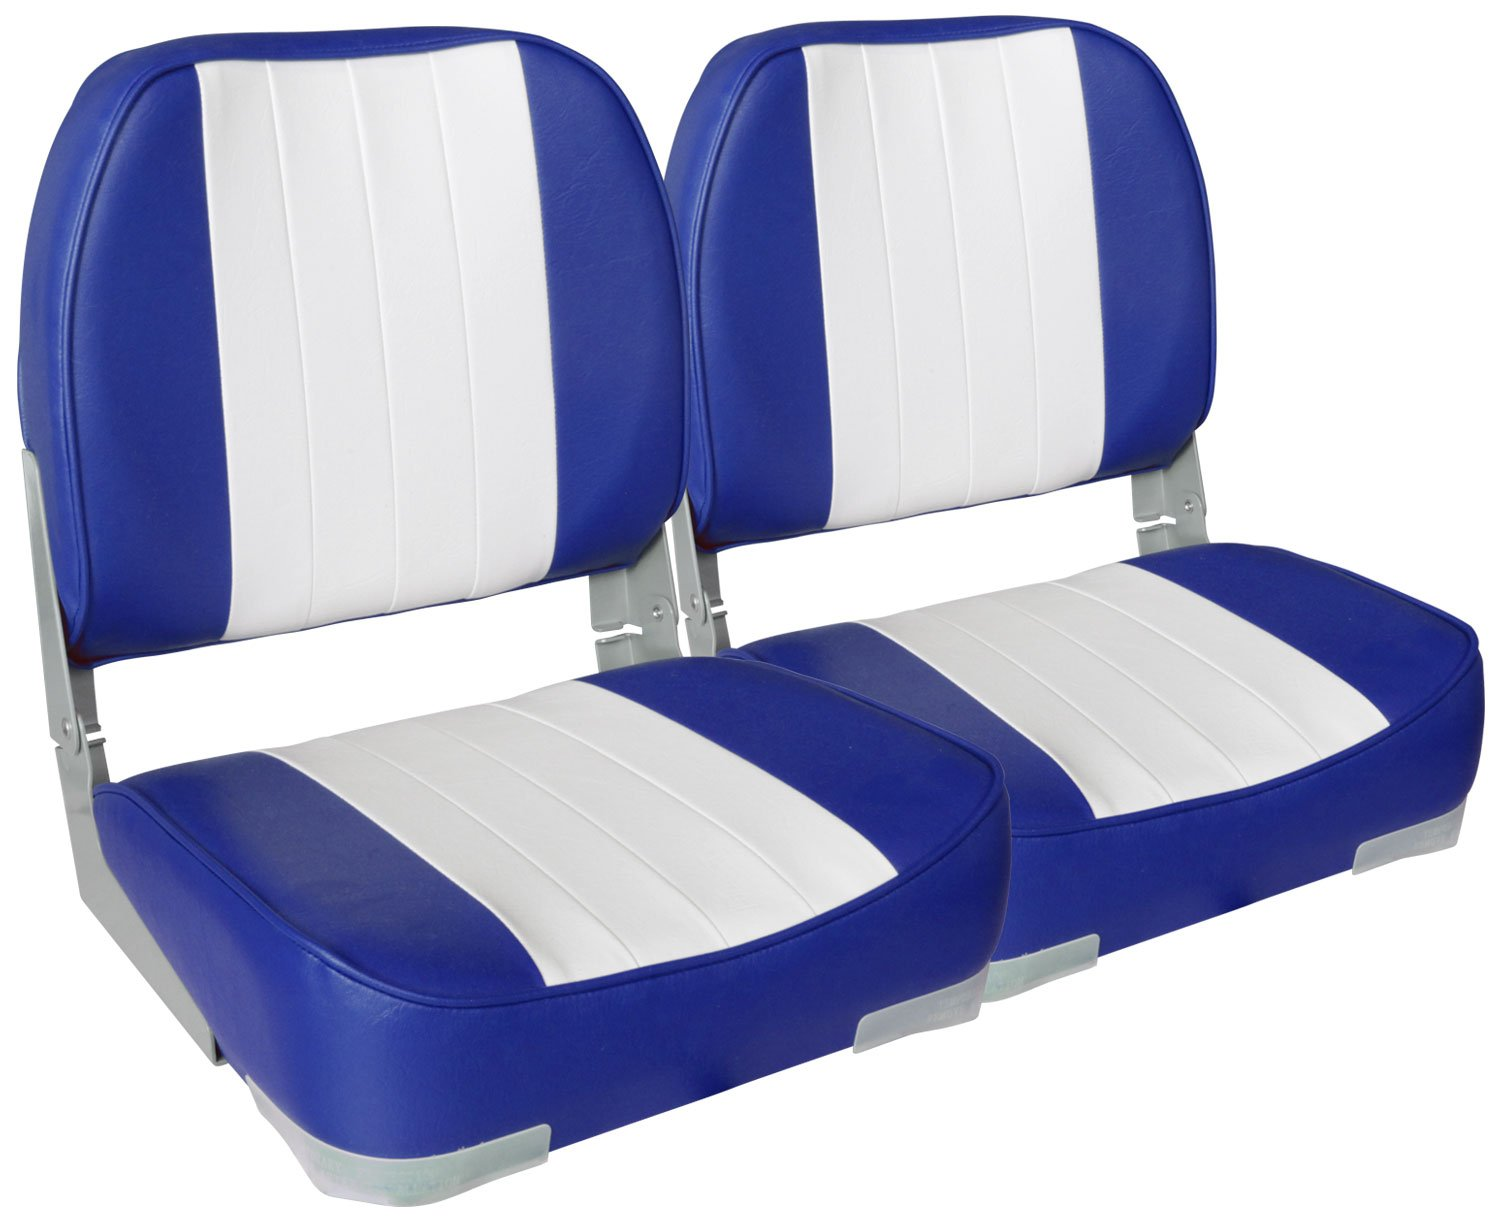 Leader Accessories A Pair of New Low Back Folding Boat Seats(2 Seats) (White/Blue) by Leader Accessories